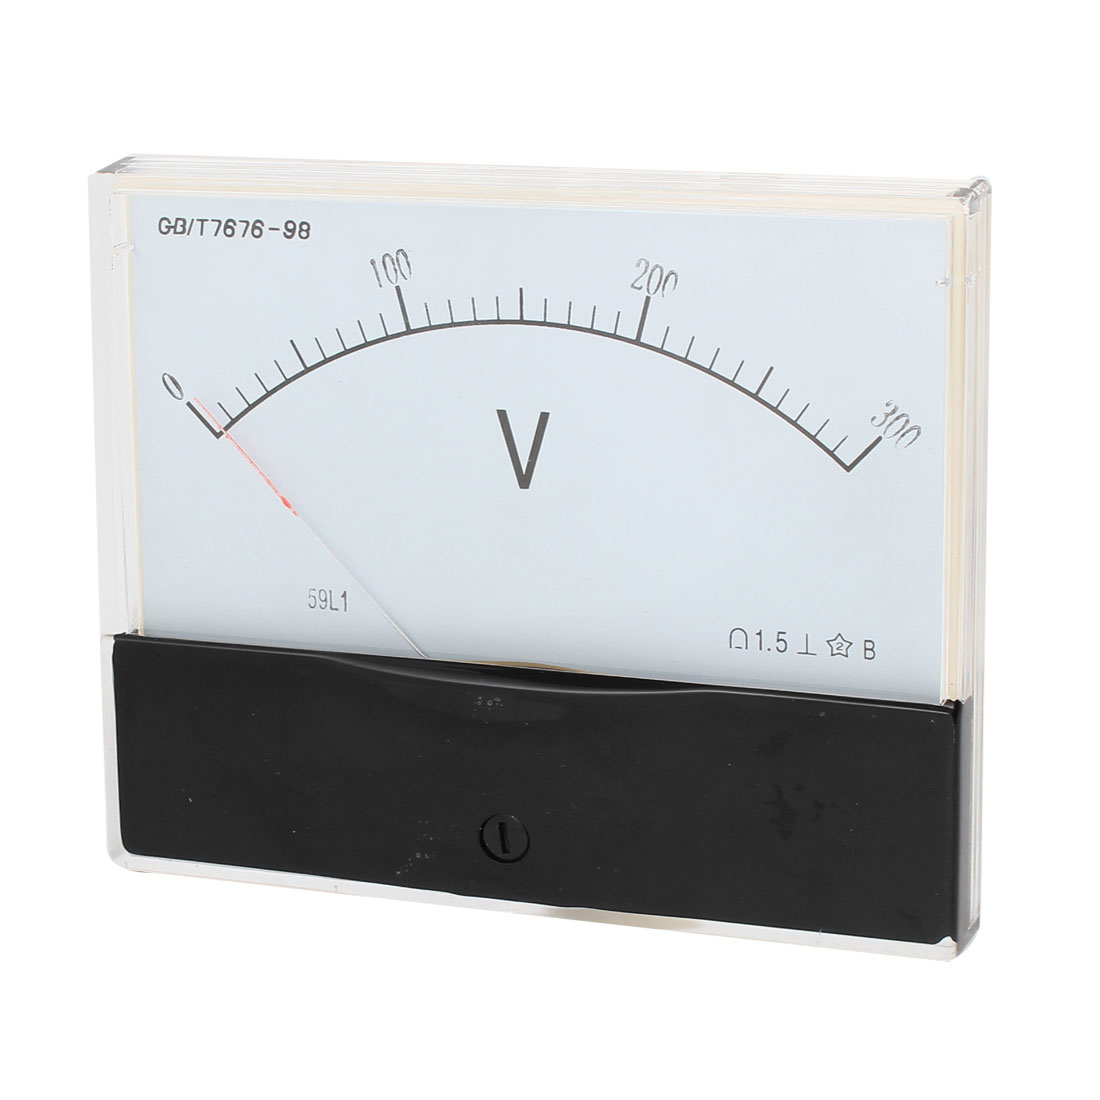 Rectangle Measurement Tool Analog Panel Voltmeter Volt Meter AC 0-300V Measuring Range 59L1